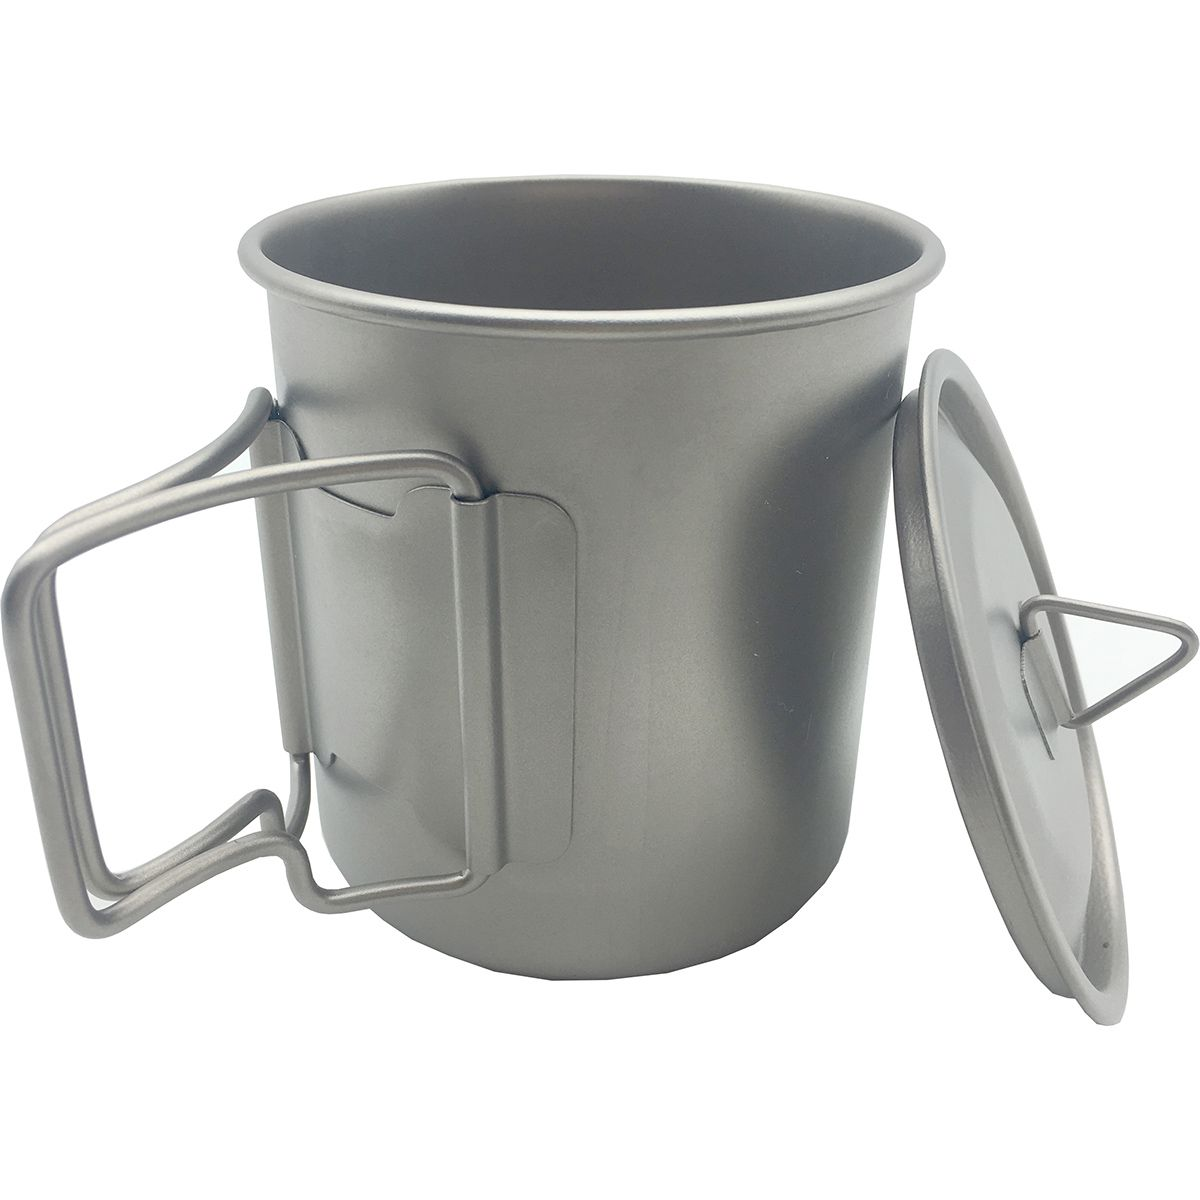 Image of EOE - Eifel Outdoor Equipment Olivin 400 Tasse (Grau)